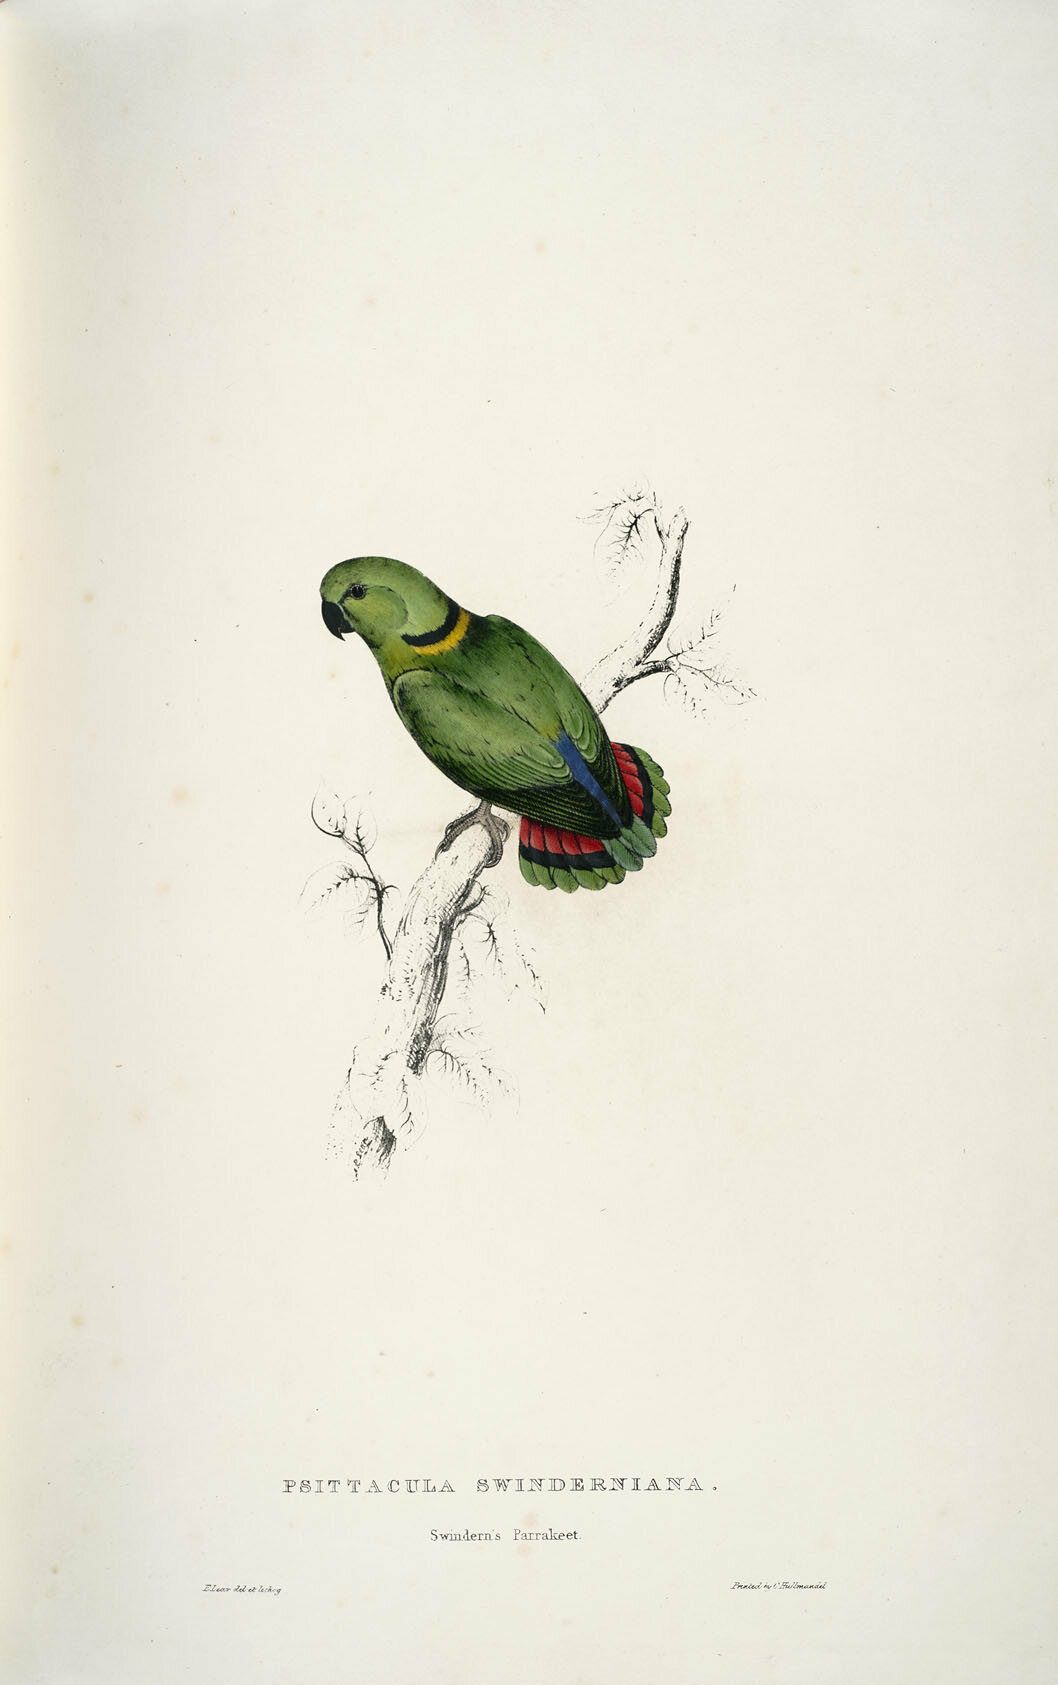 A small Swindern's parakeet shows off its plumage.